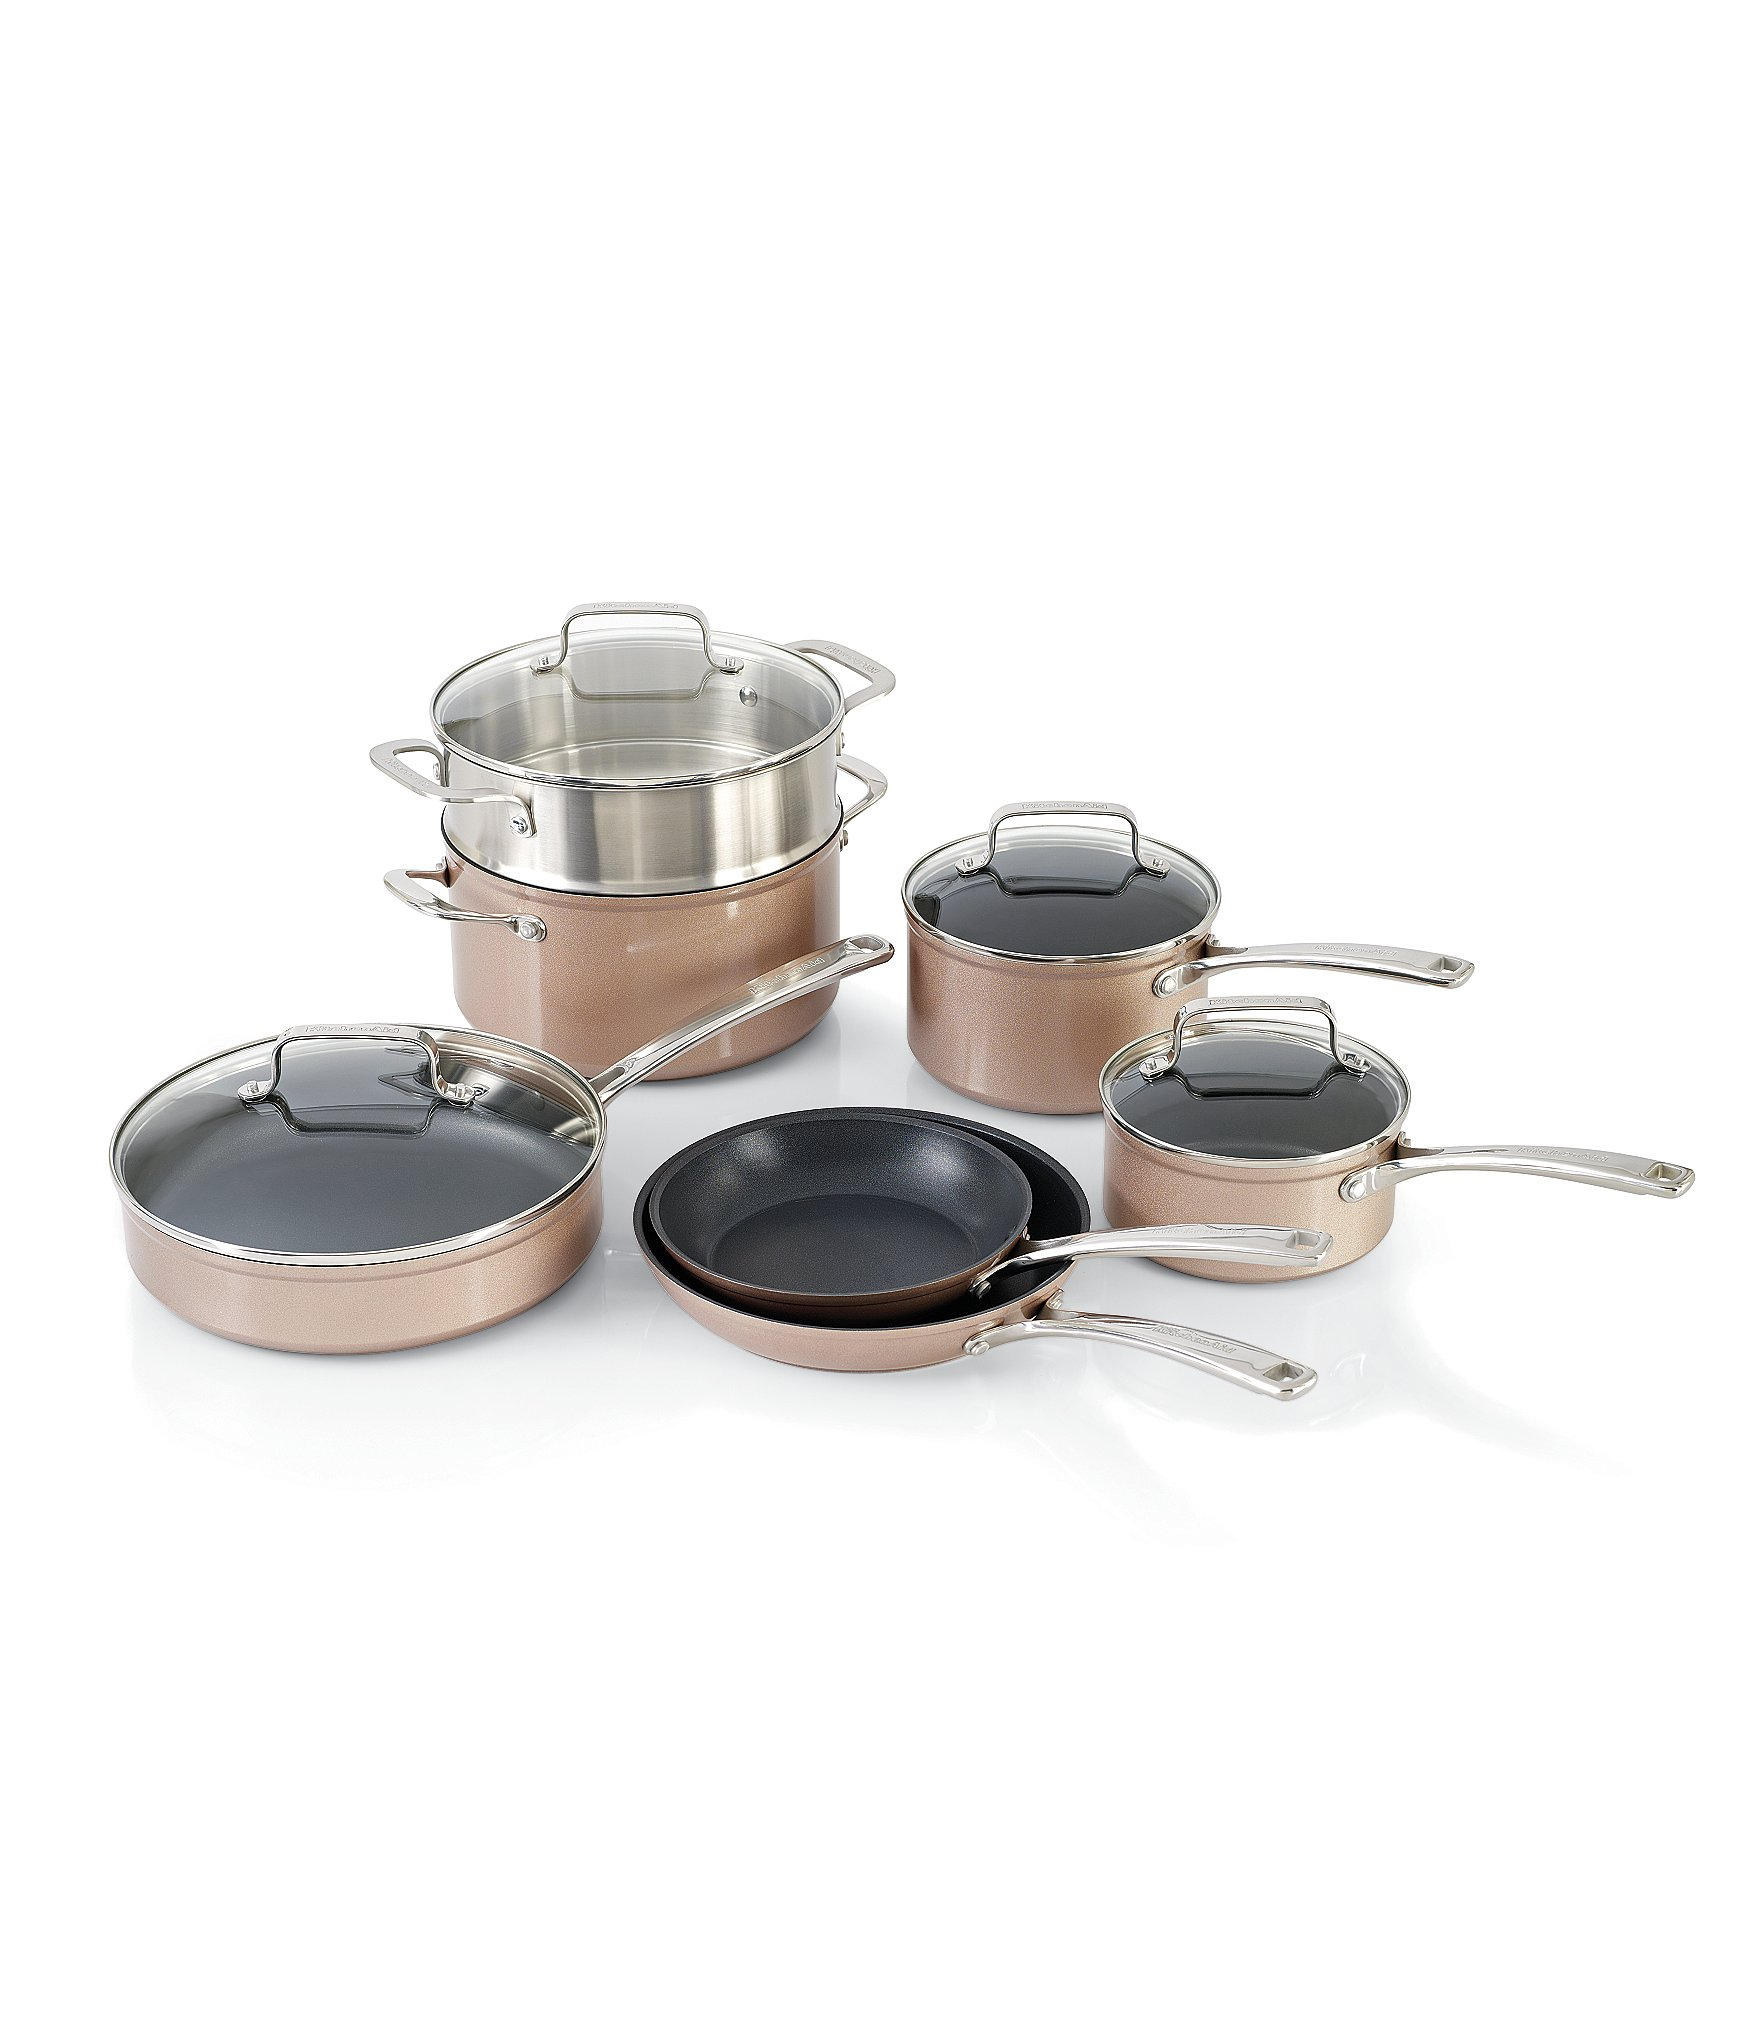 KitchenAid Toffee Delight Hard Anodized Nonstick 11 Piece